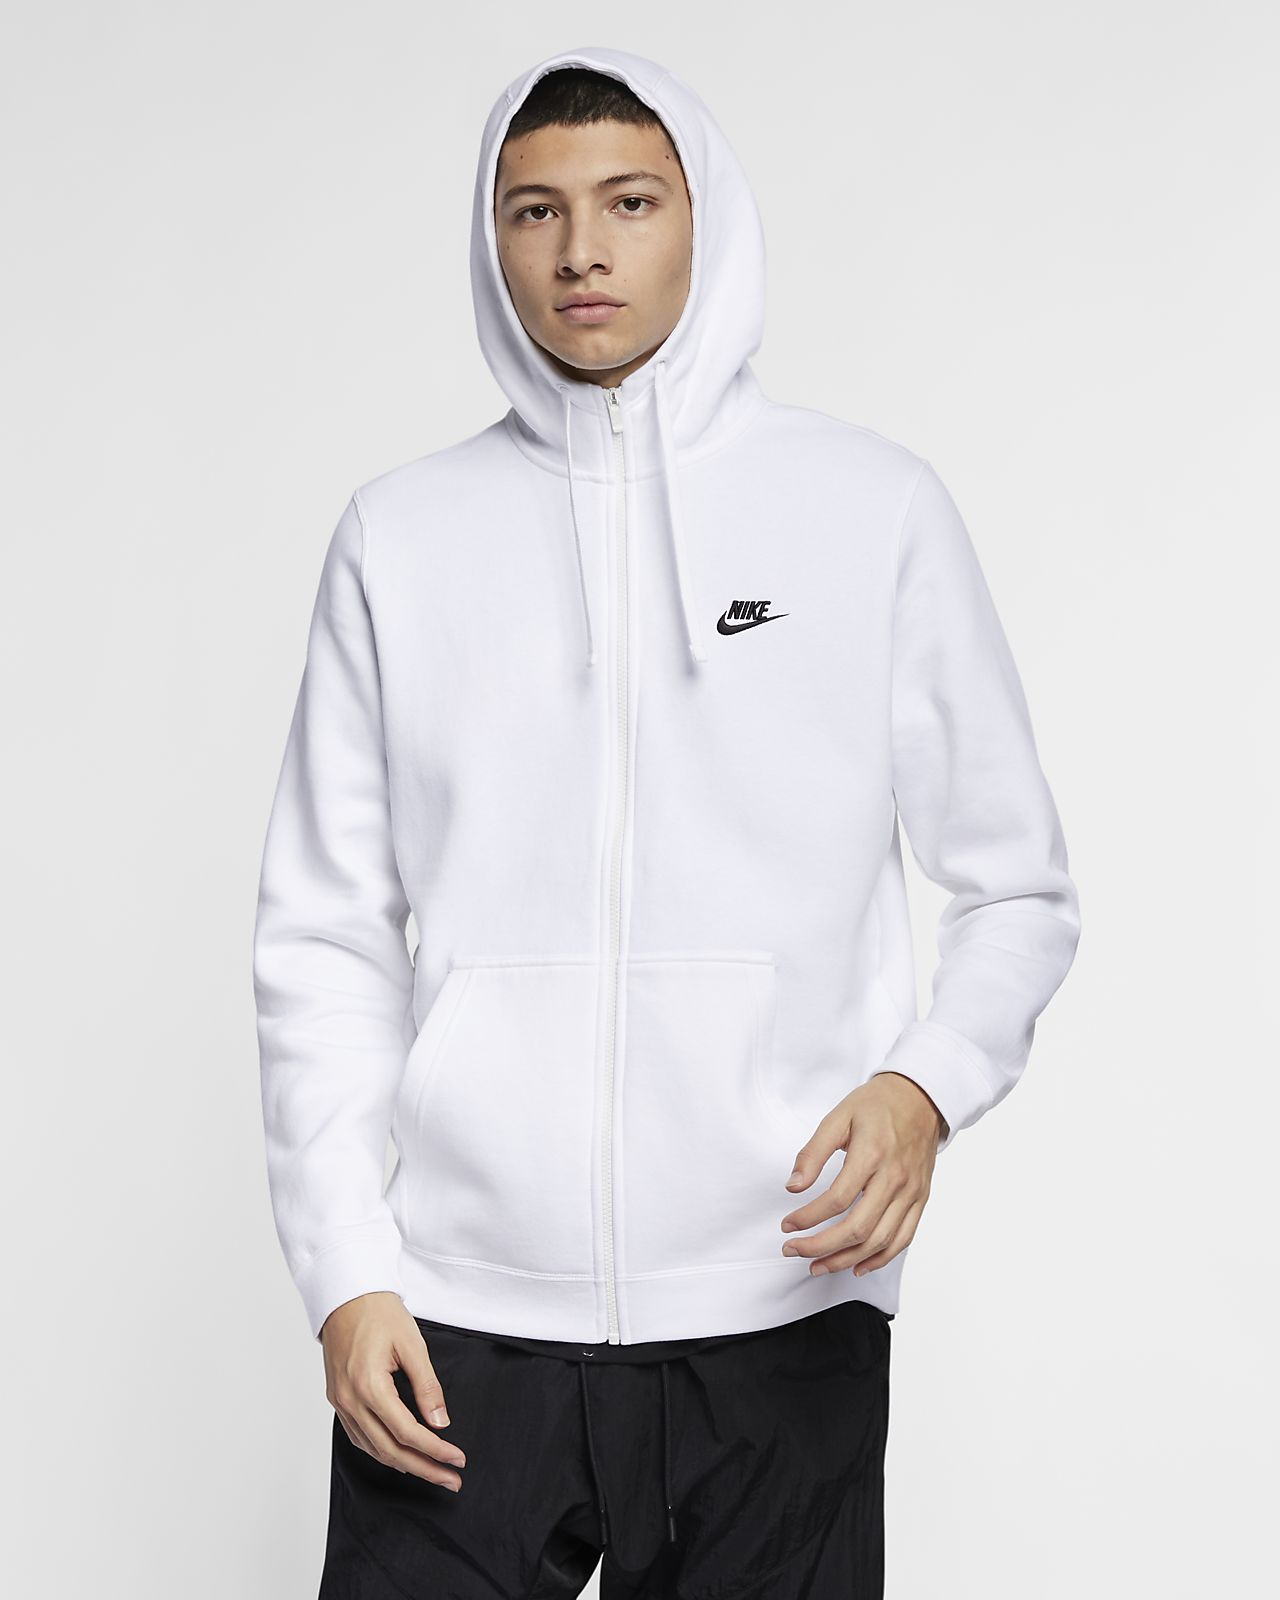 37e28ff60e1c Nike Sportswear Club Fleece Men s Hoodie. Nike.com